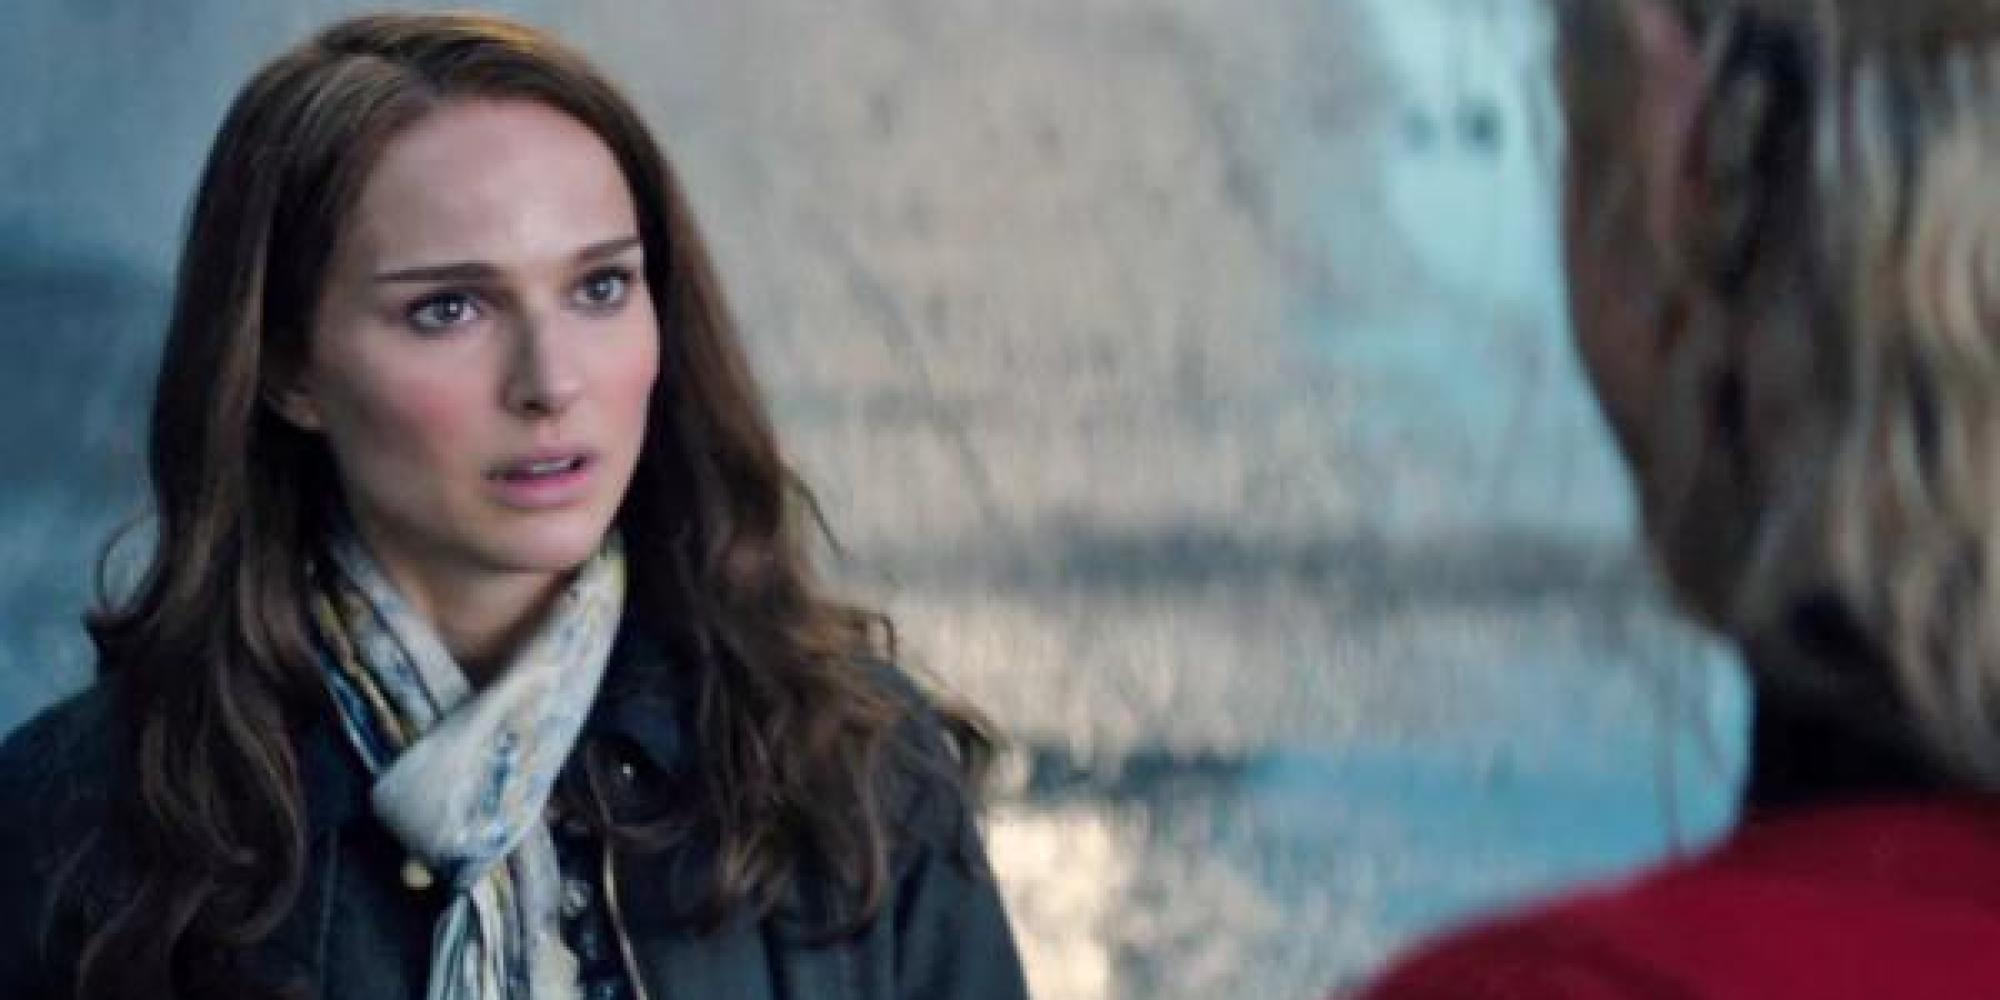 Natalie Portman as Jane Foster in Thor: The Dark World ... |Natalie Portman Thor The Dark World